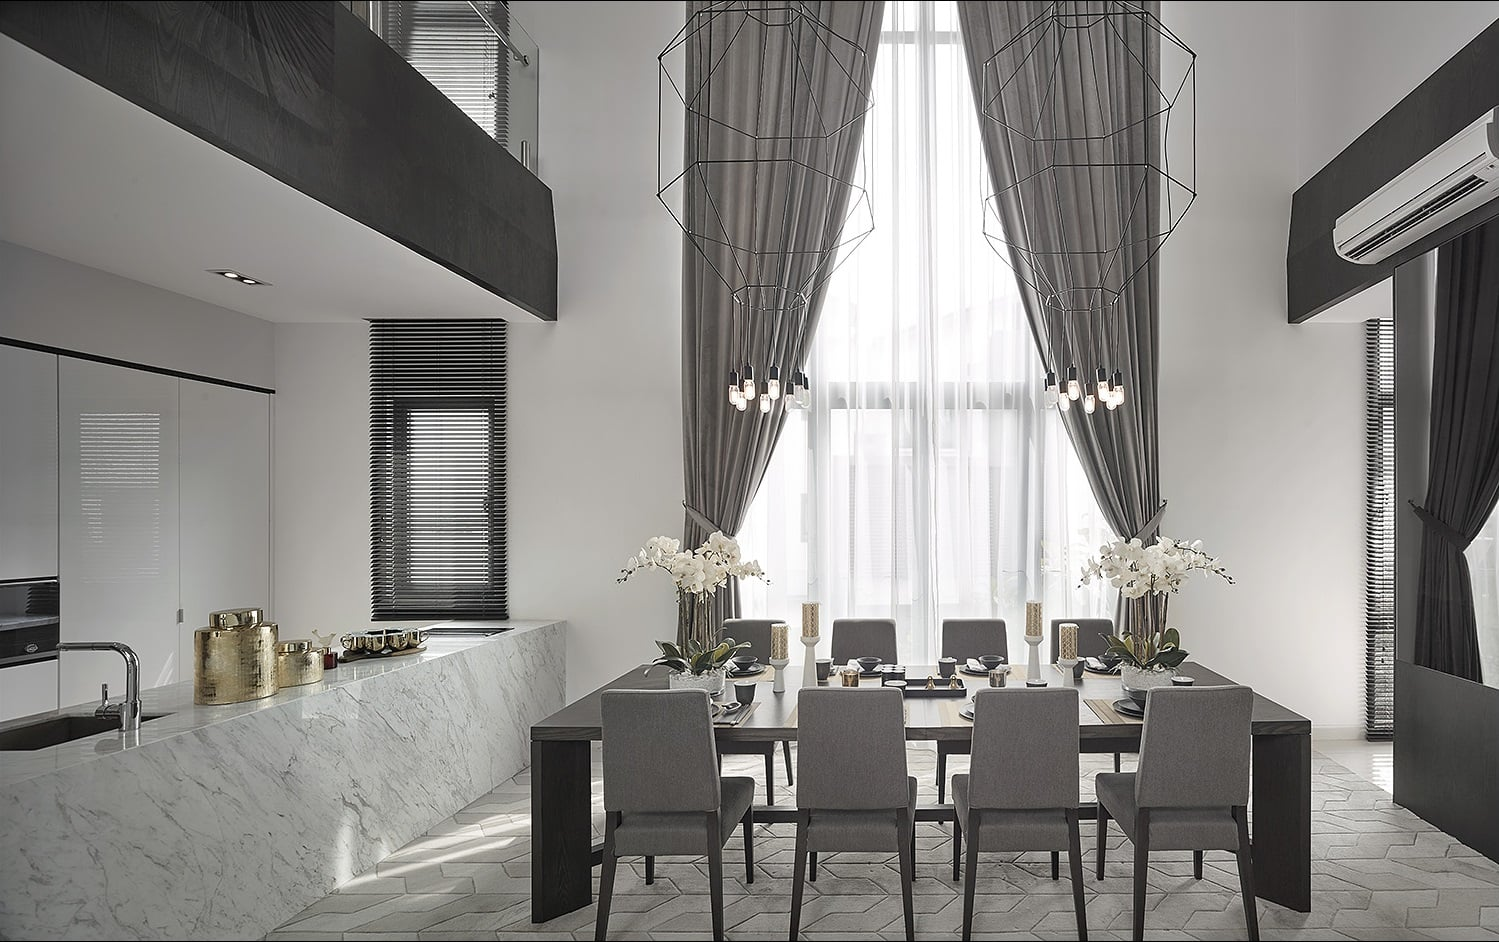 Vibia wireflow pendant lighting hangs over this classy double volume dining area.